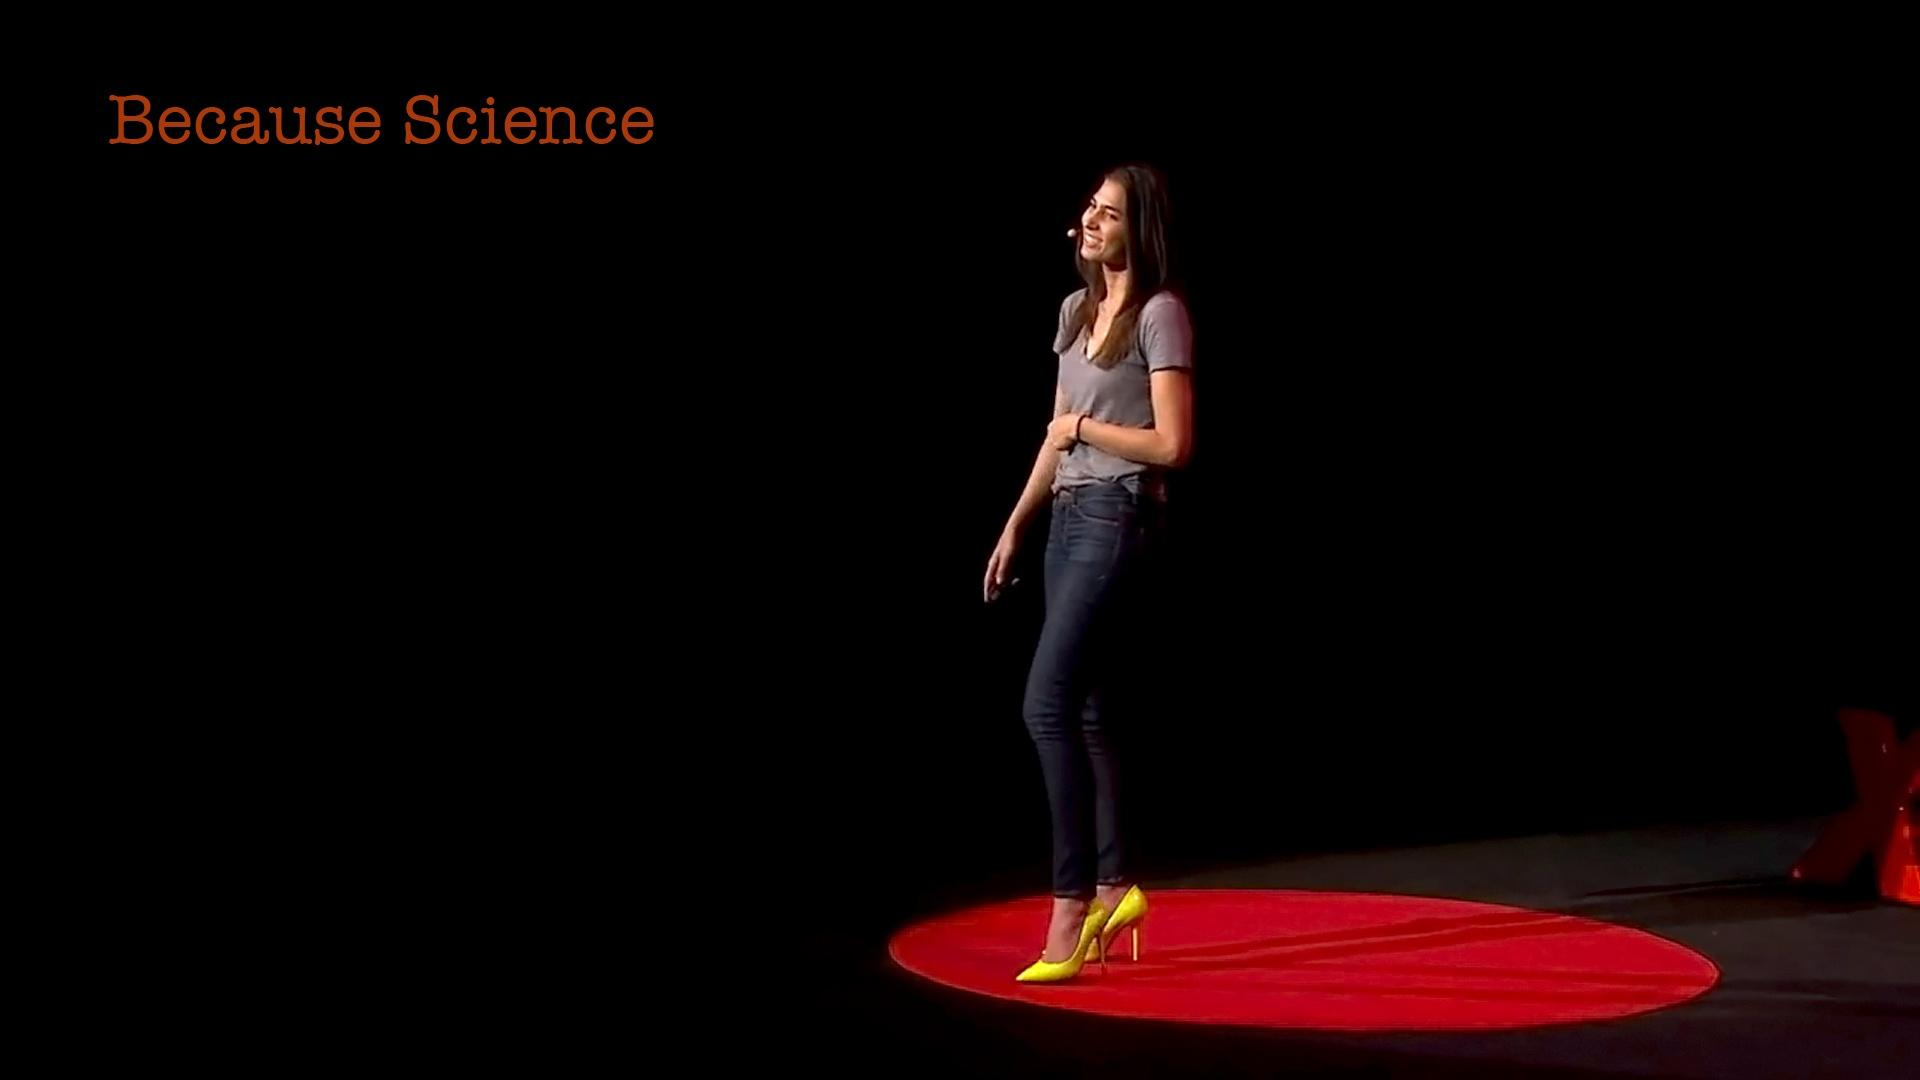 Crystal Dilworth: Because Science image